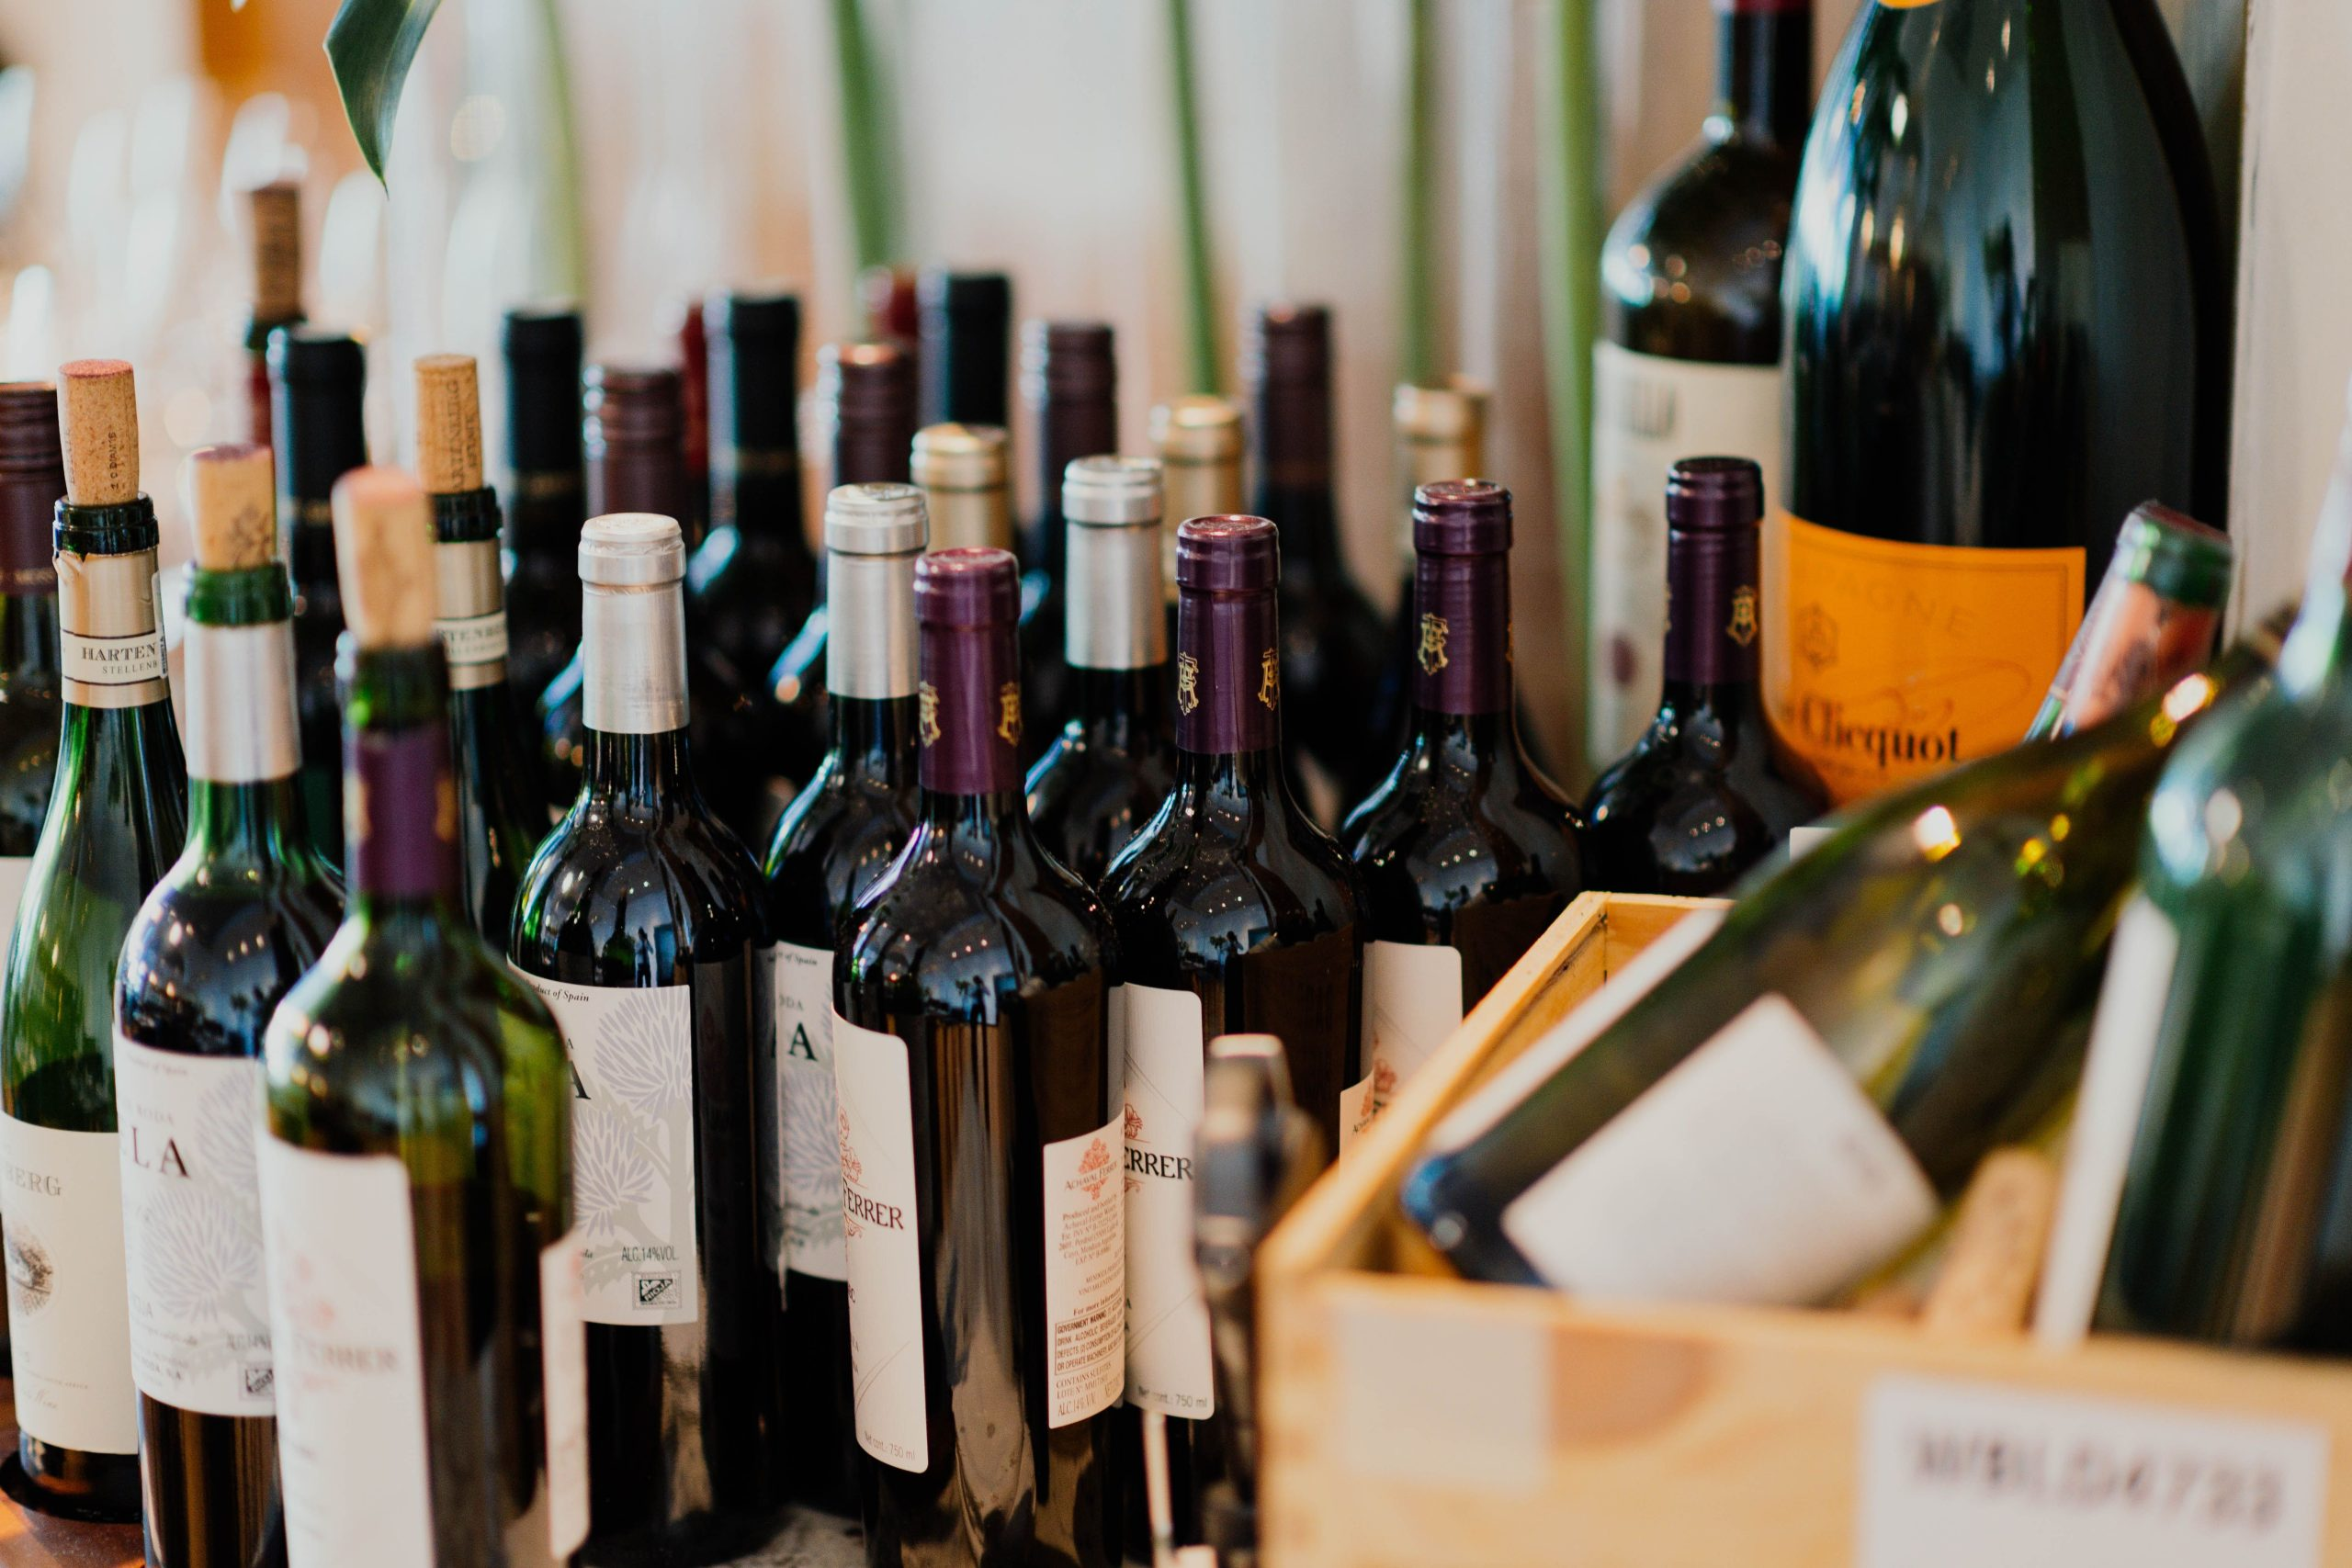 Brabant Wine Trophy: Croatian Wines Win 7 Gold Medals At World's Largest Wine